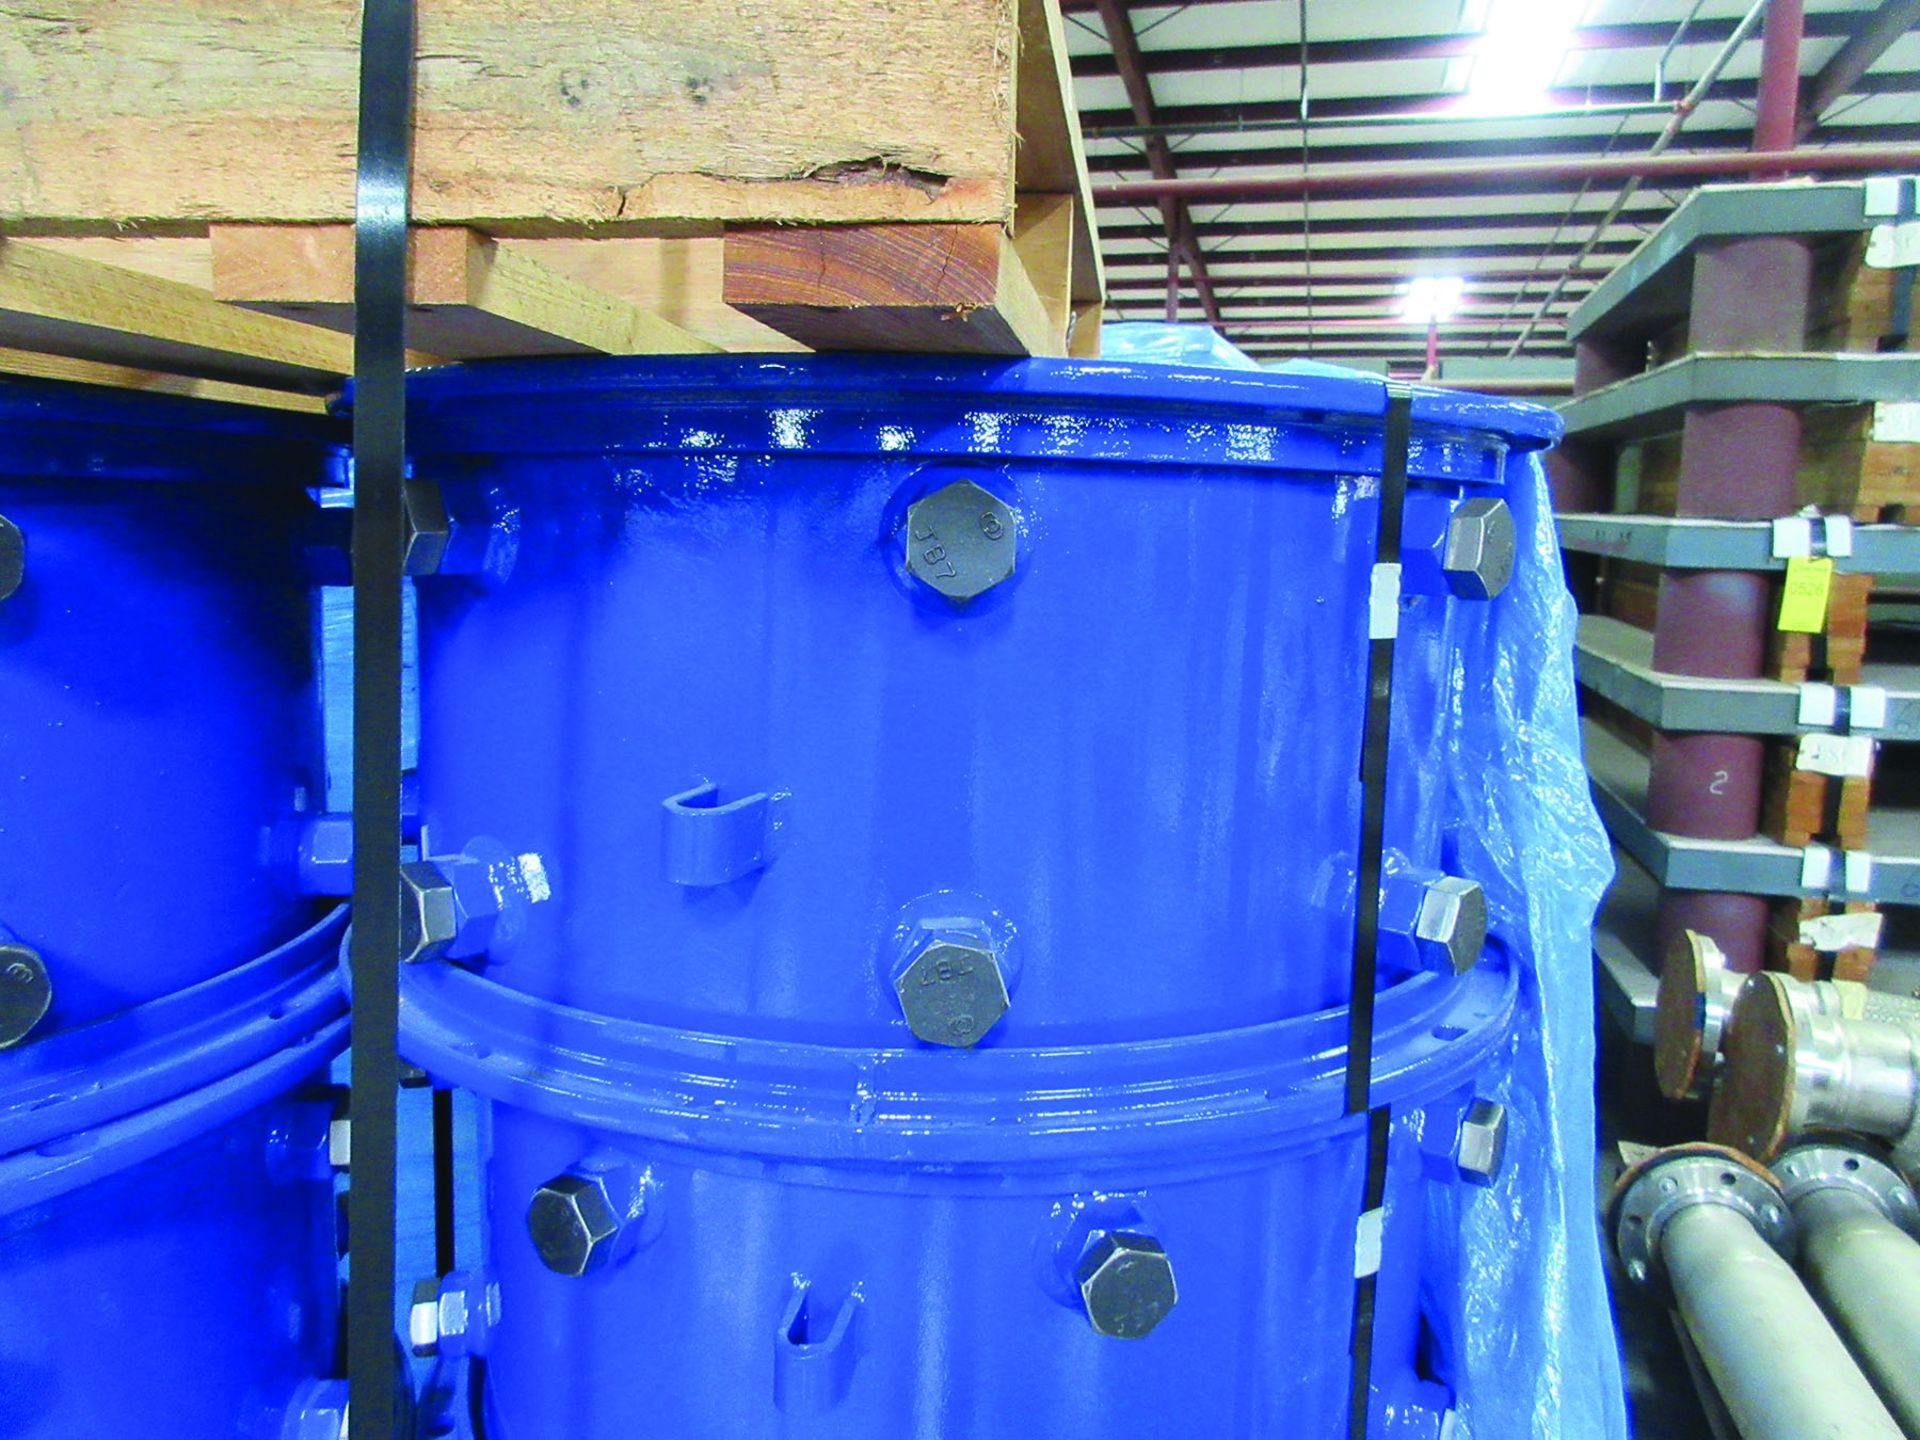 FIBREX INSULATION 4'' X 24'' X 48'' (4) PALLETS, COUPLING GUARDS, (72) 24'' STEEL LOCK COUPLINGS, - Image 5 of 5